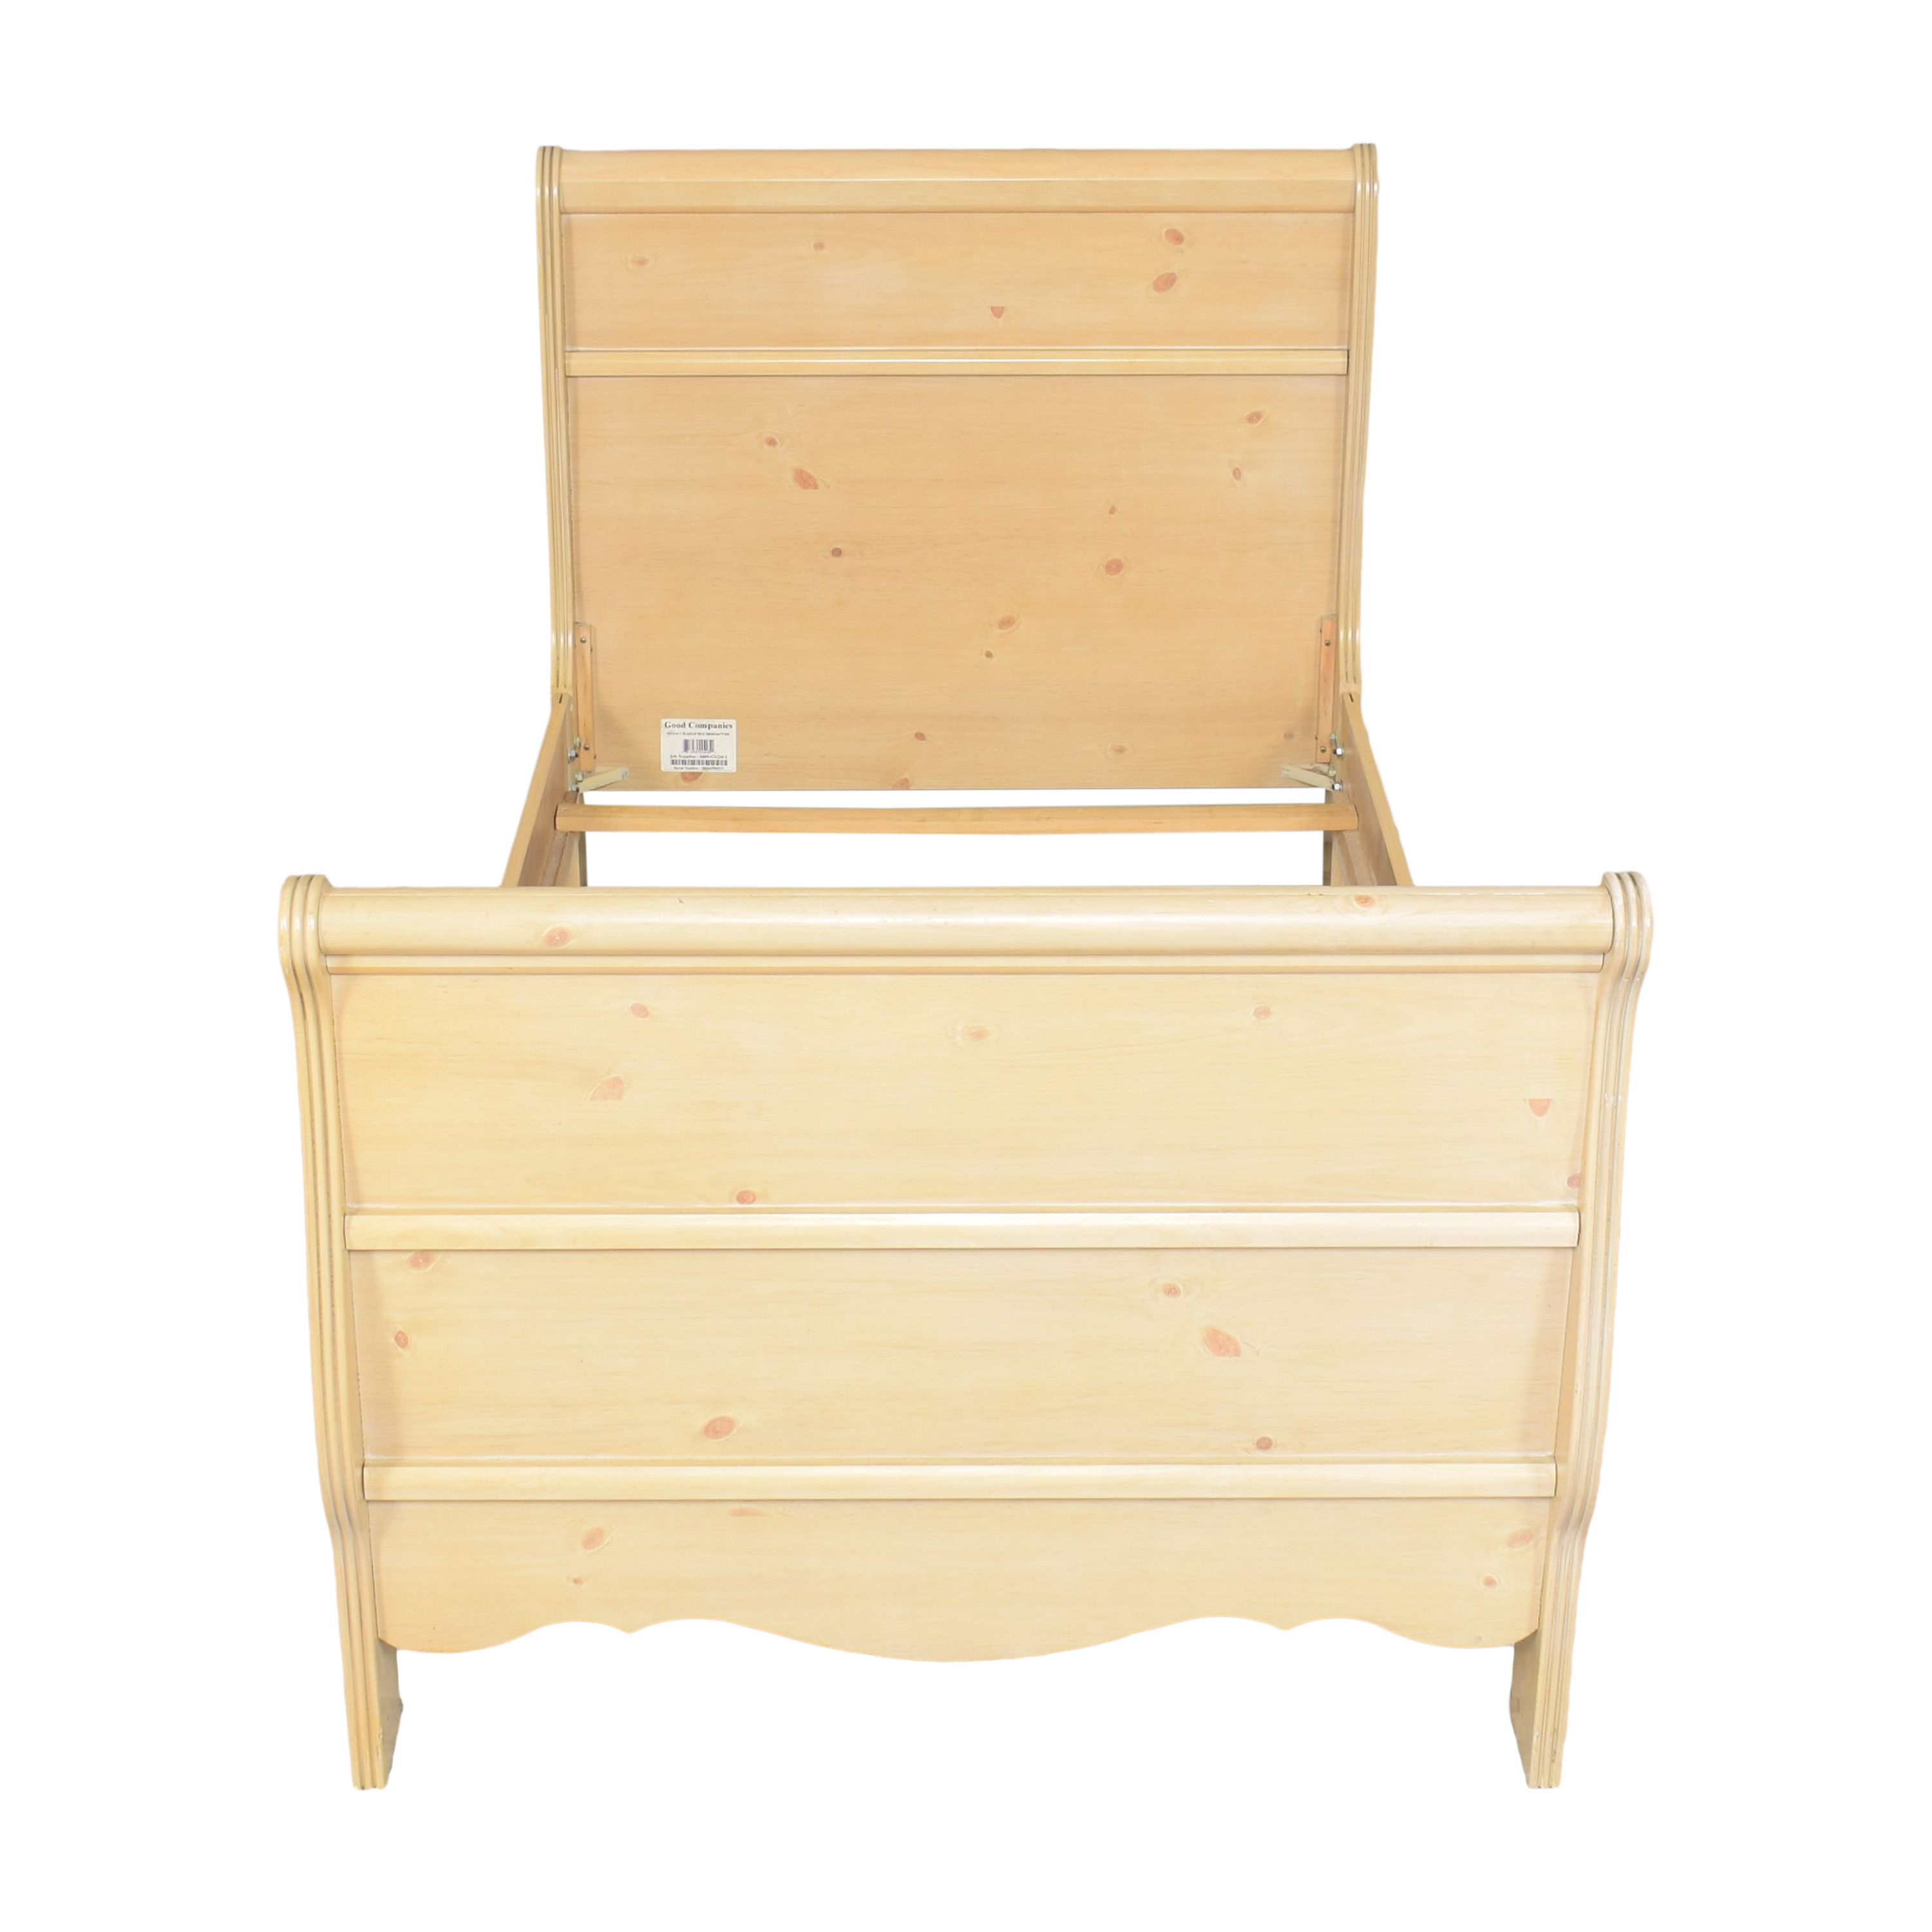 A-America Wood Furniture A-America Wood Furniture Twin Sleigh Bed Beds